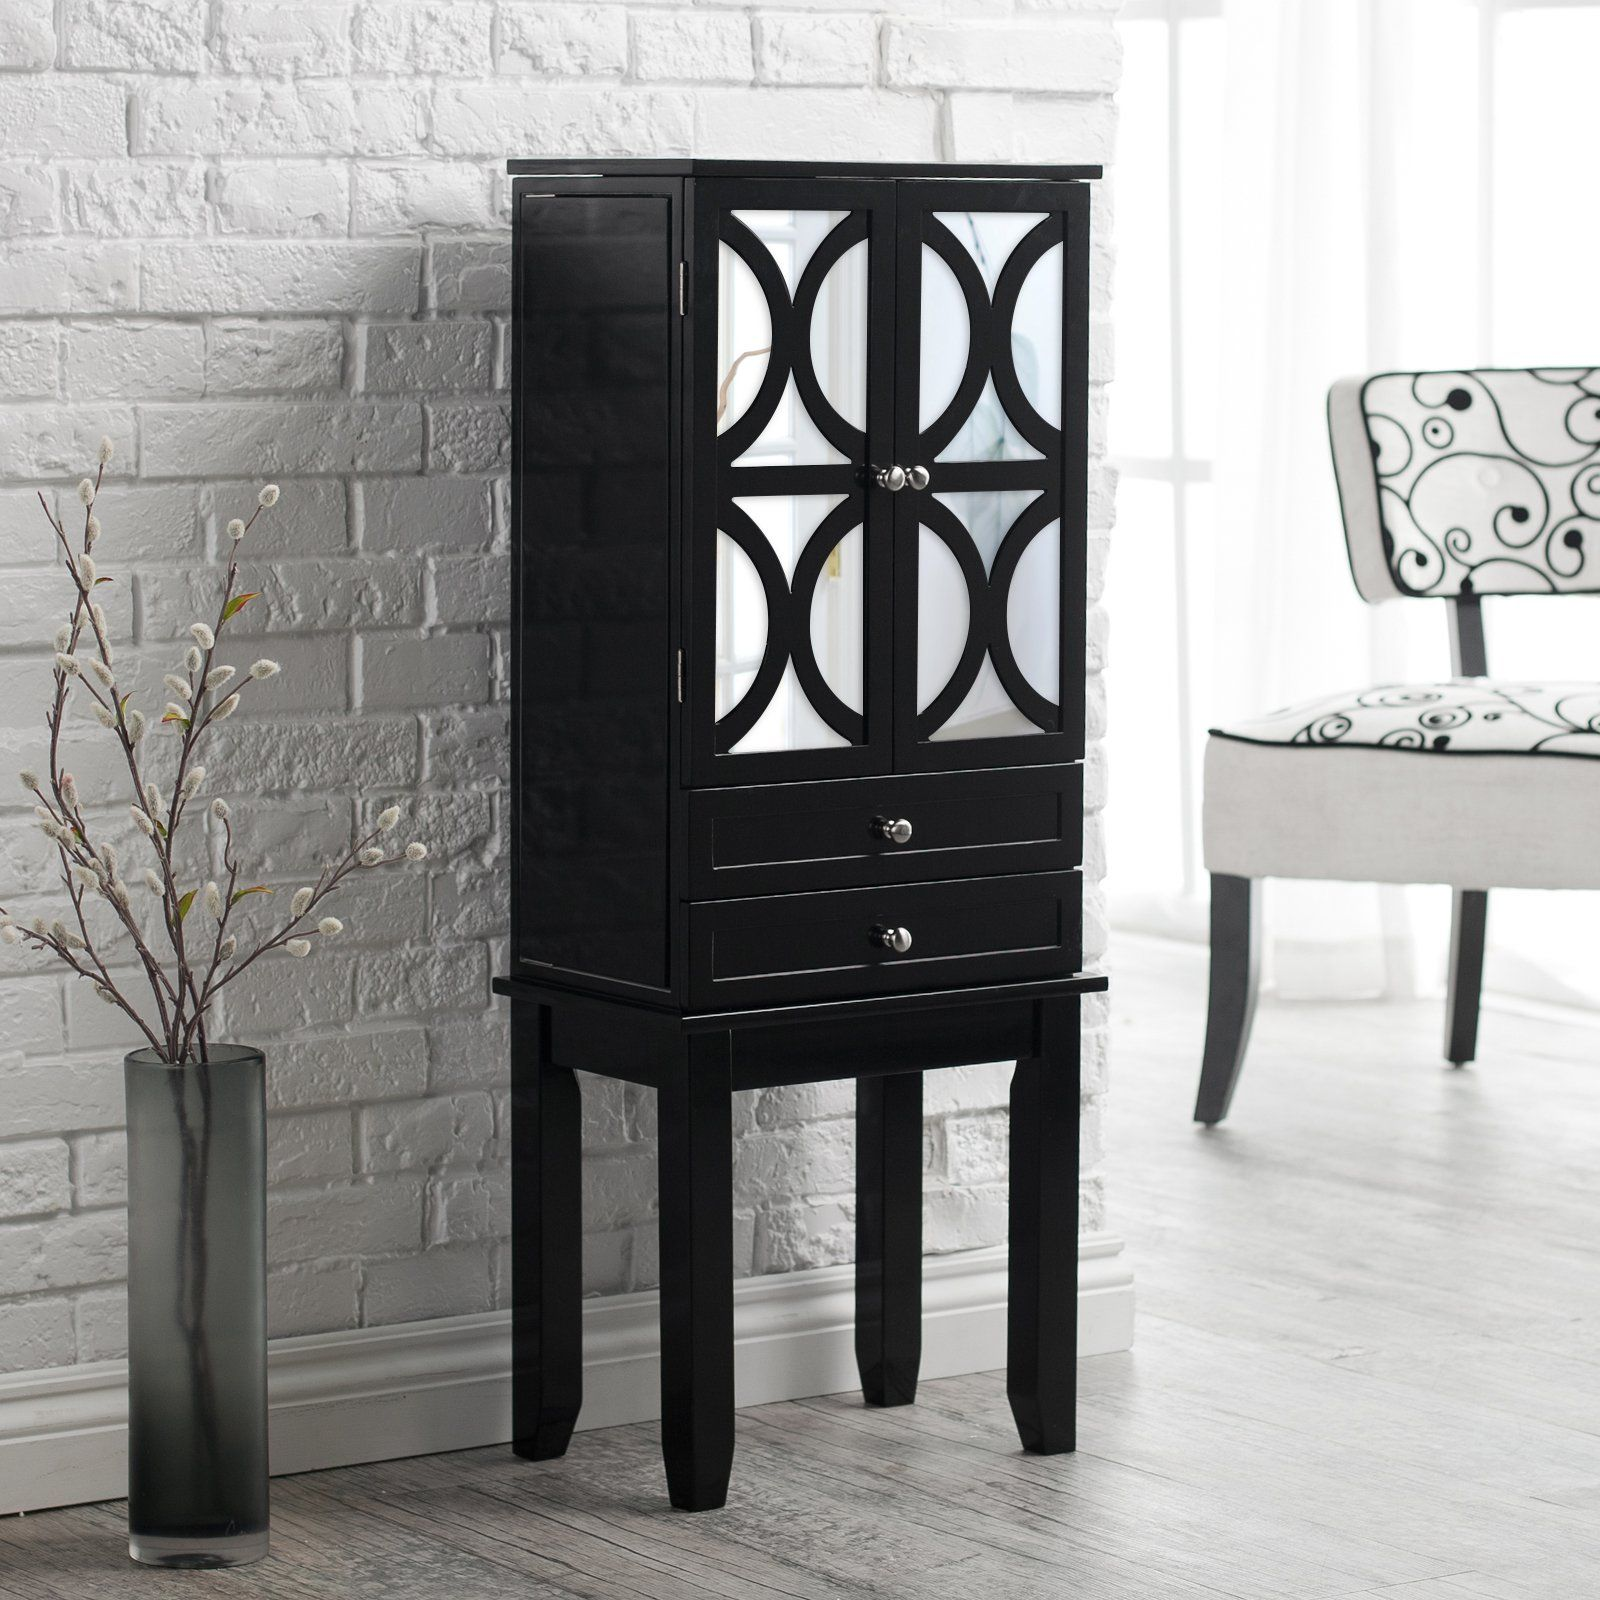 Glossy Black Trellis Wall Accent: Have To Have It. Belham Living Mirrored Lattice Front